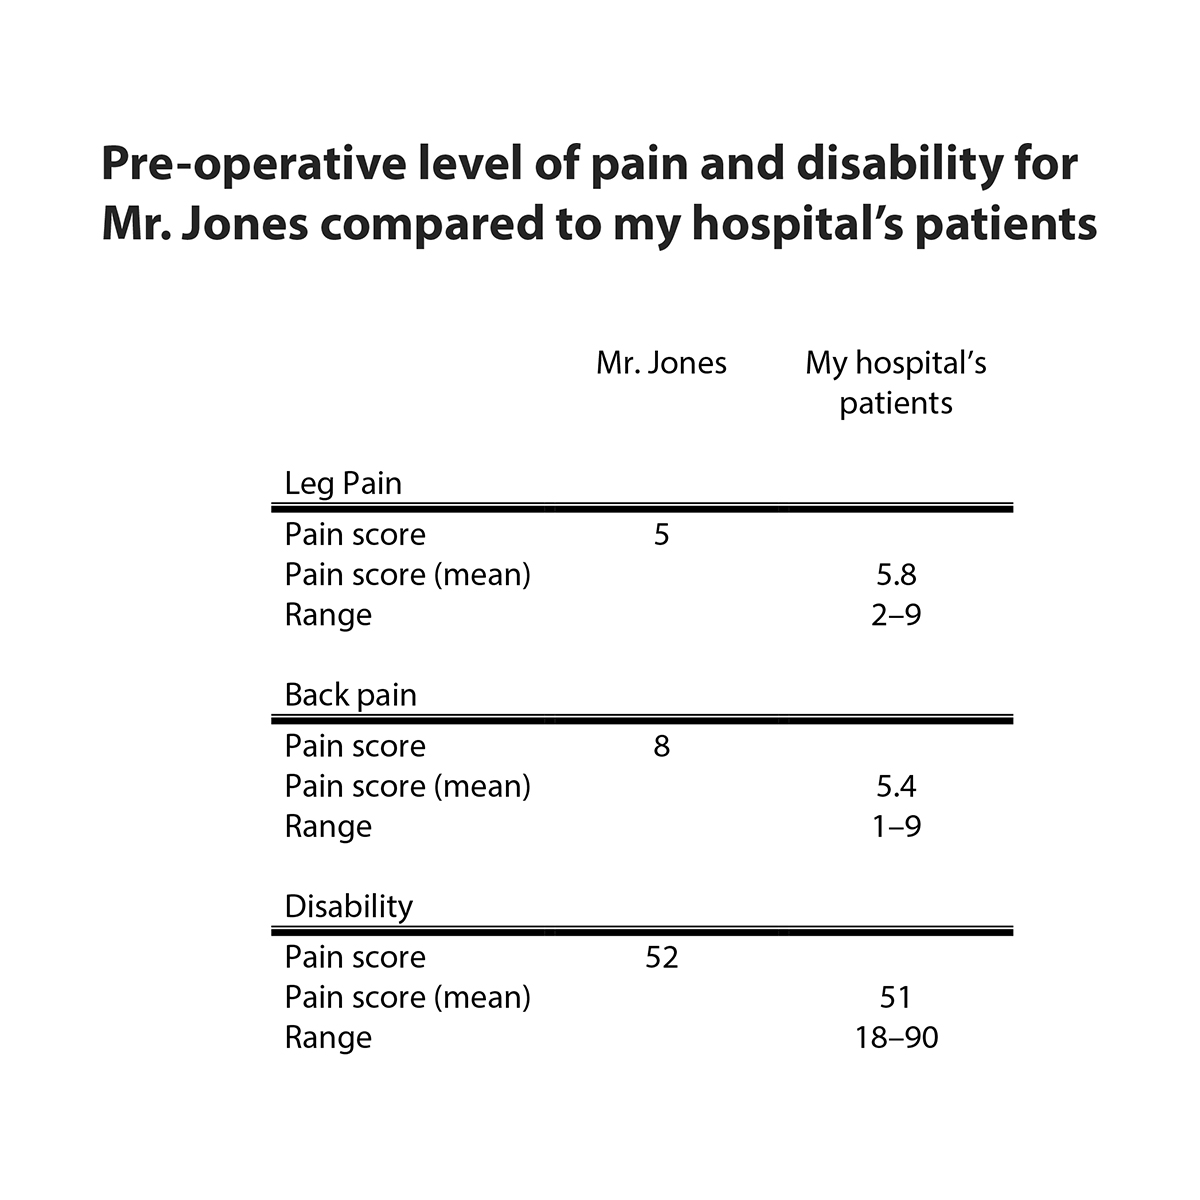 Table showing pre-operative level of back and leg pain and disability for Mr. Jones compared to my hospital's patients.